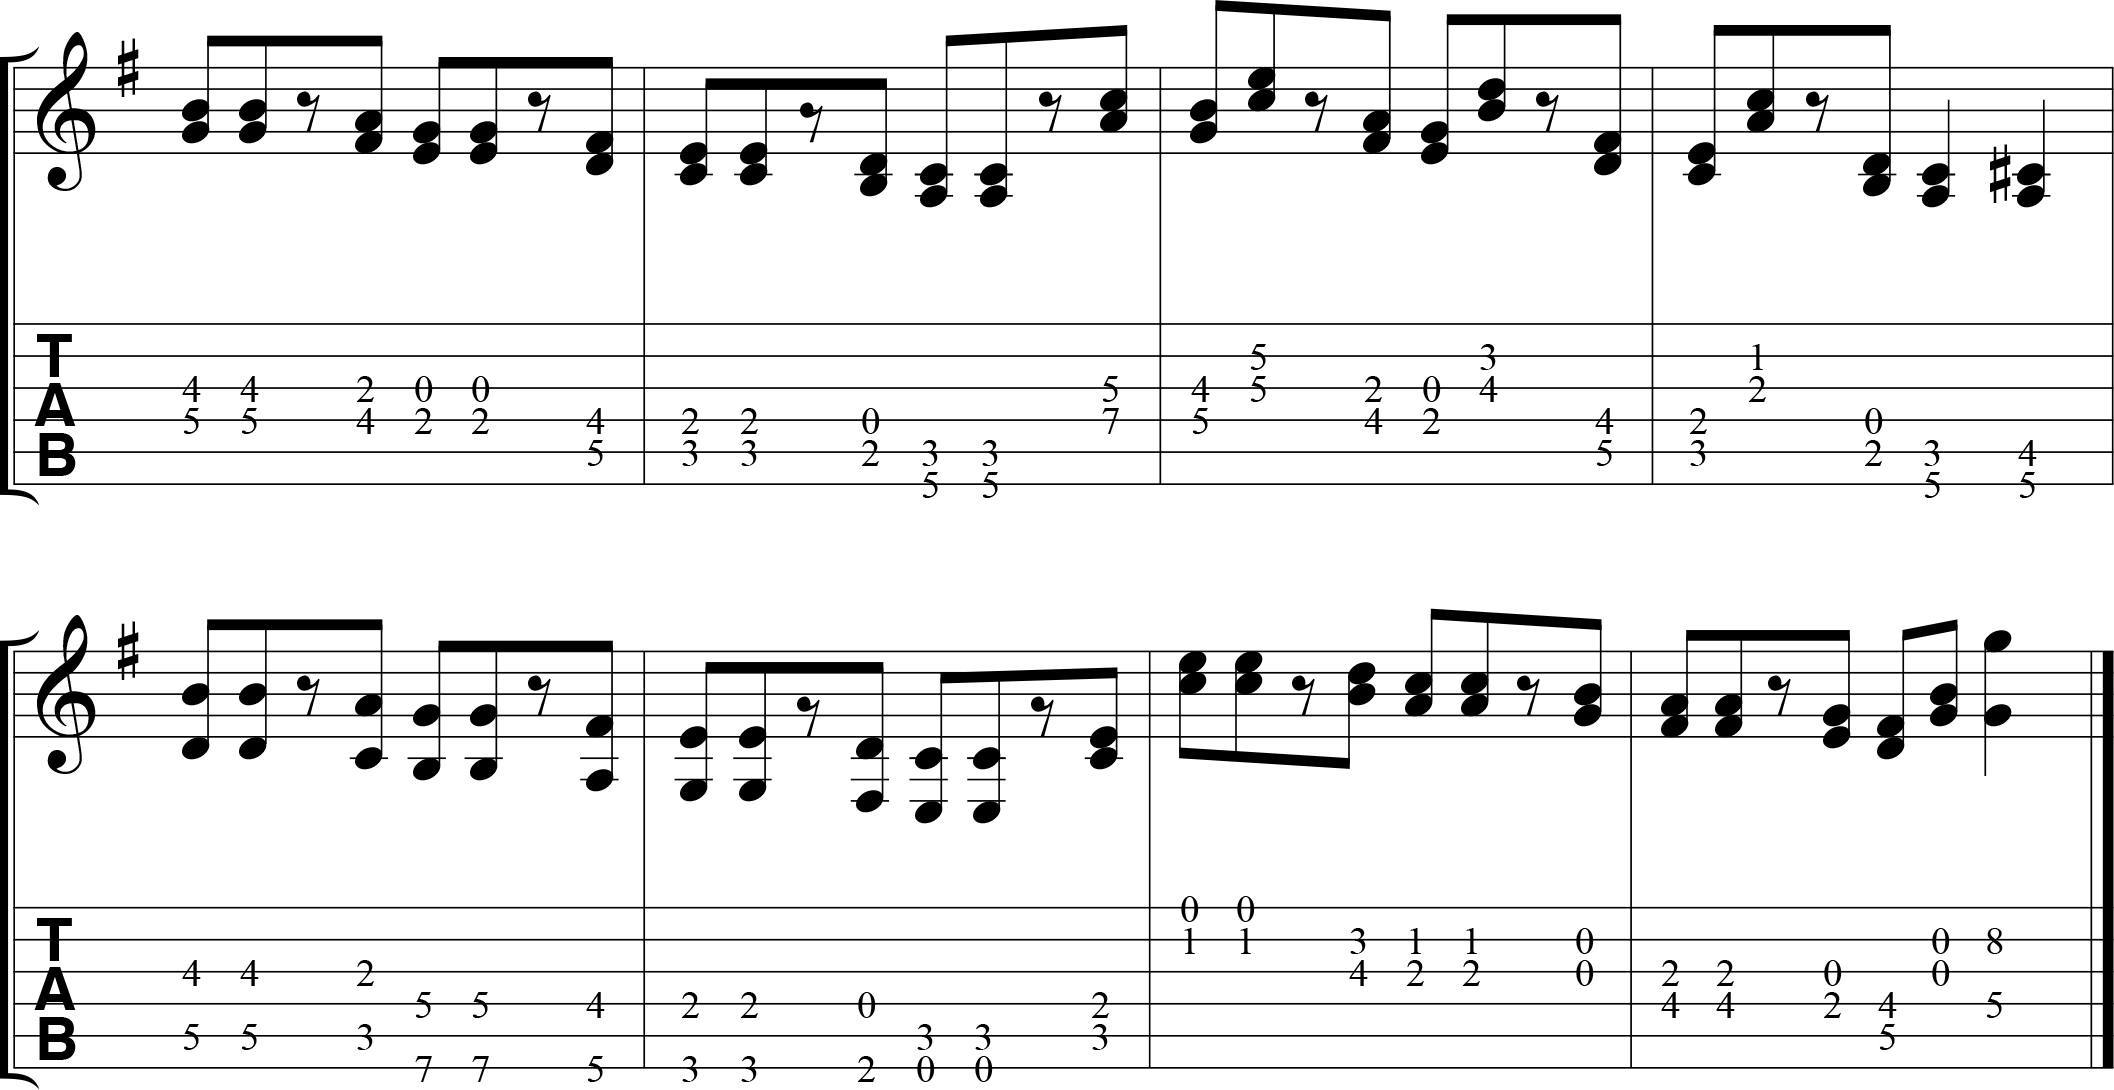 Double stop example--pentatonic scale.